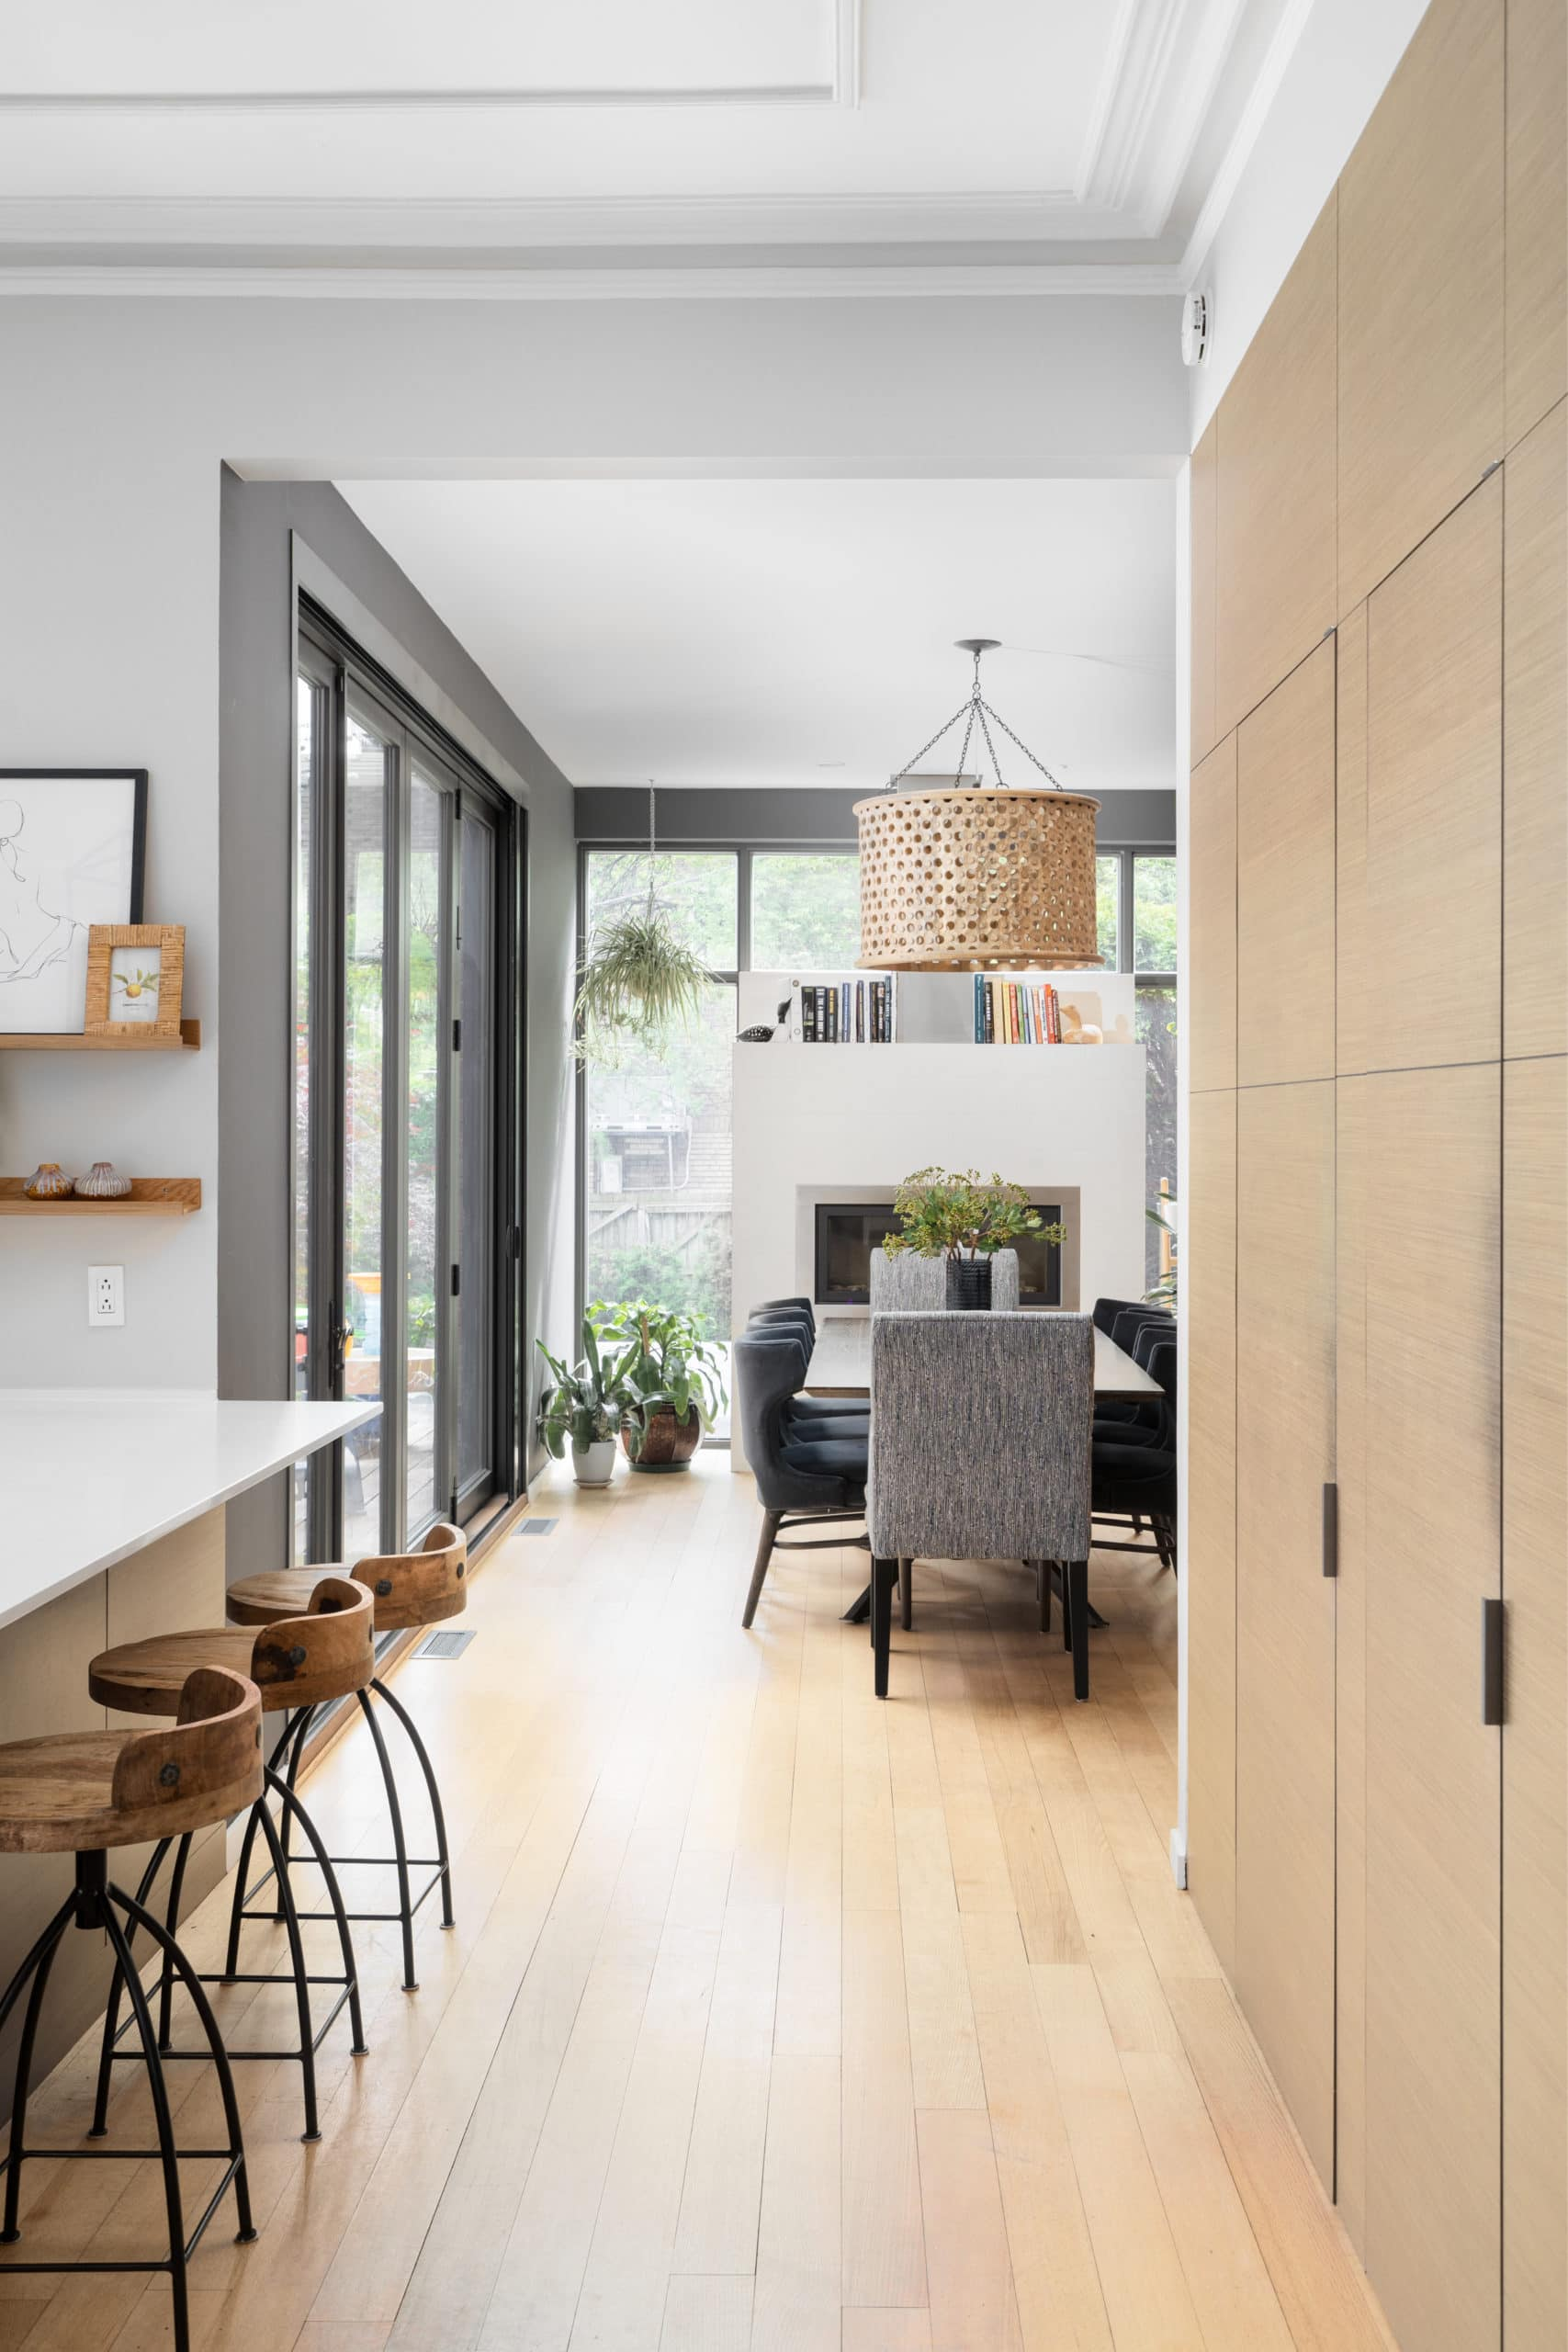 Modern, clean dining room and kitchen open concept